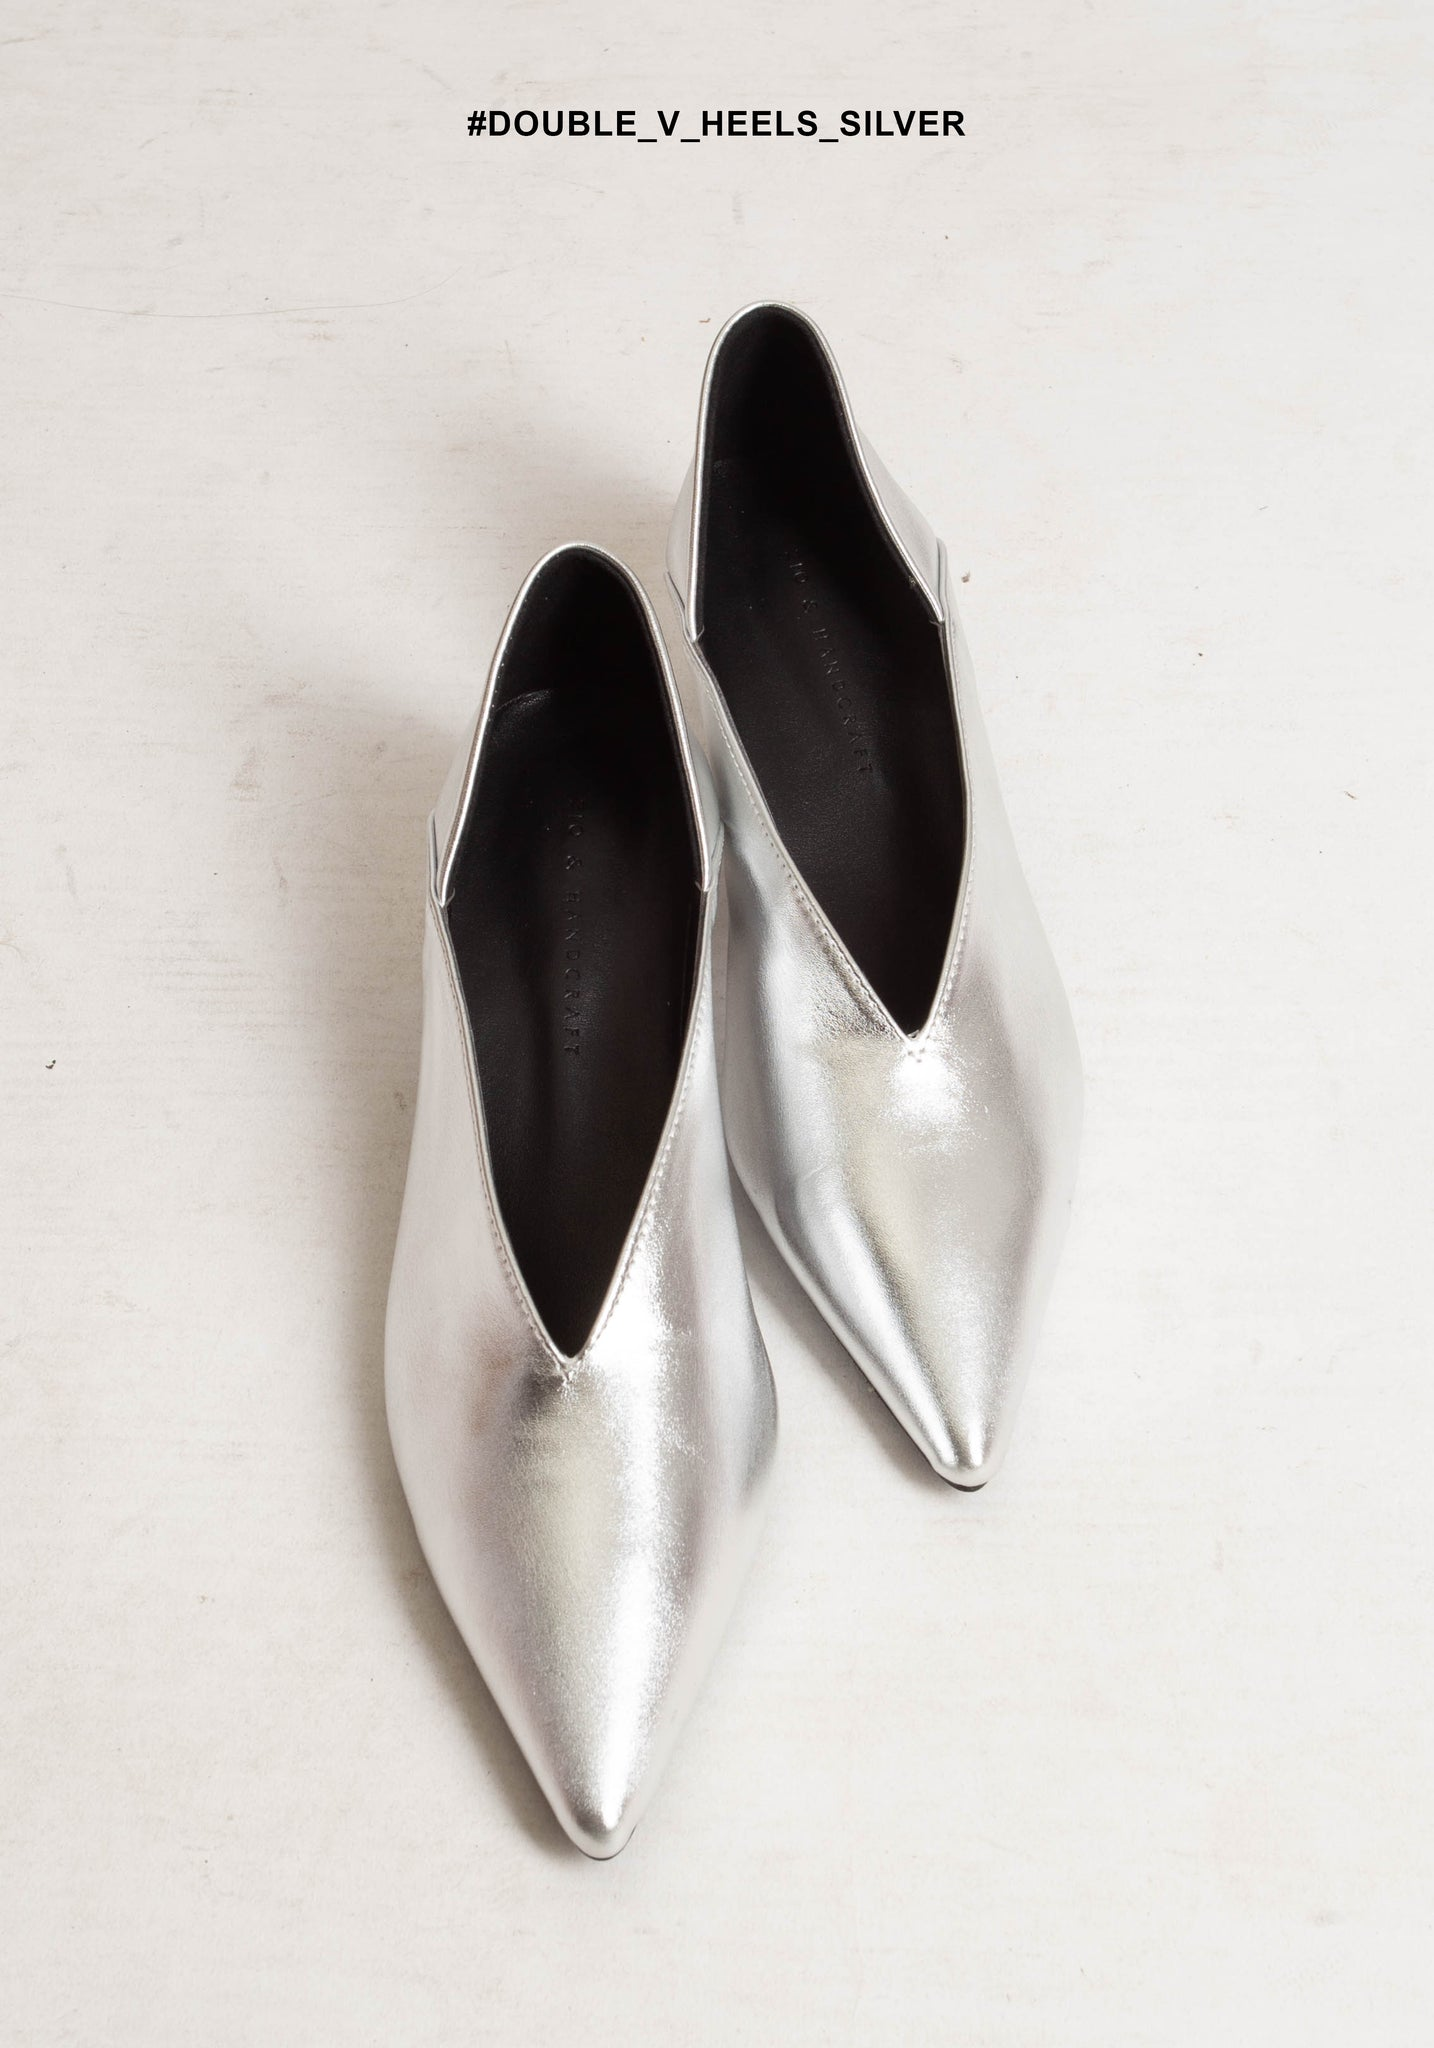 Double V Heels Silver - whoami